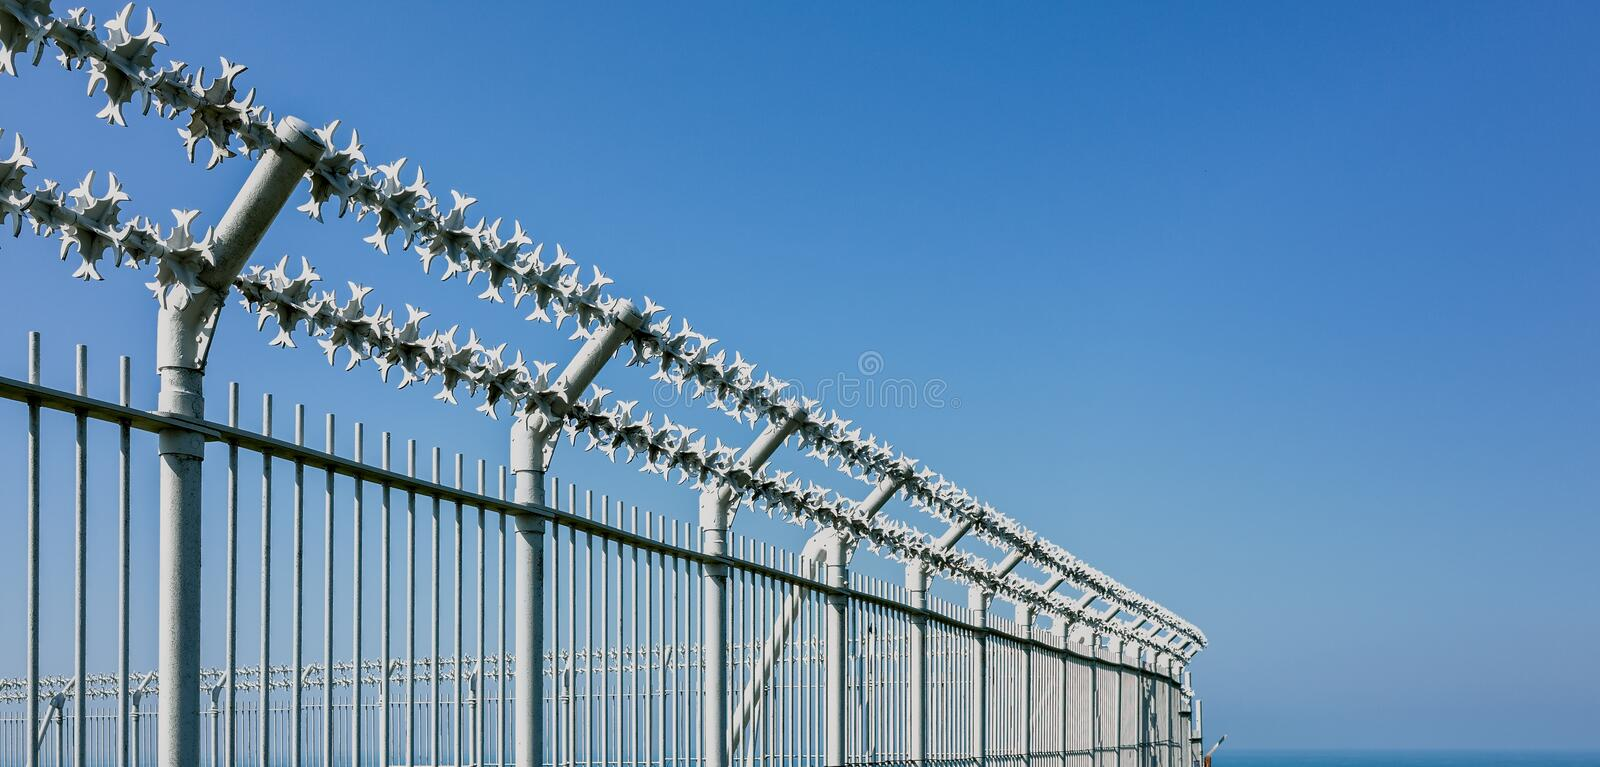 Military Razor Wire Security Fence Stock Photo - Image of wire ...